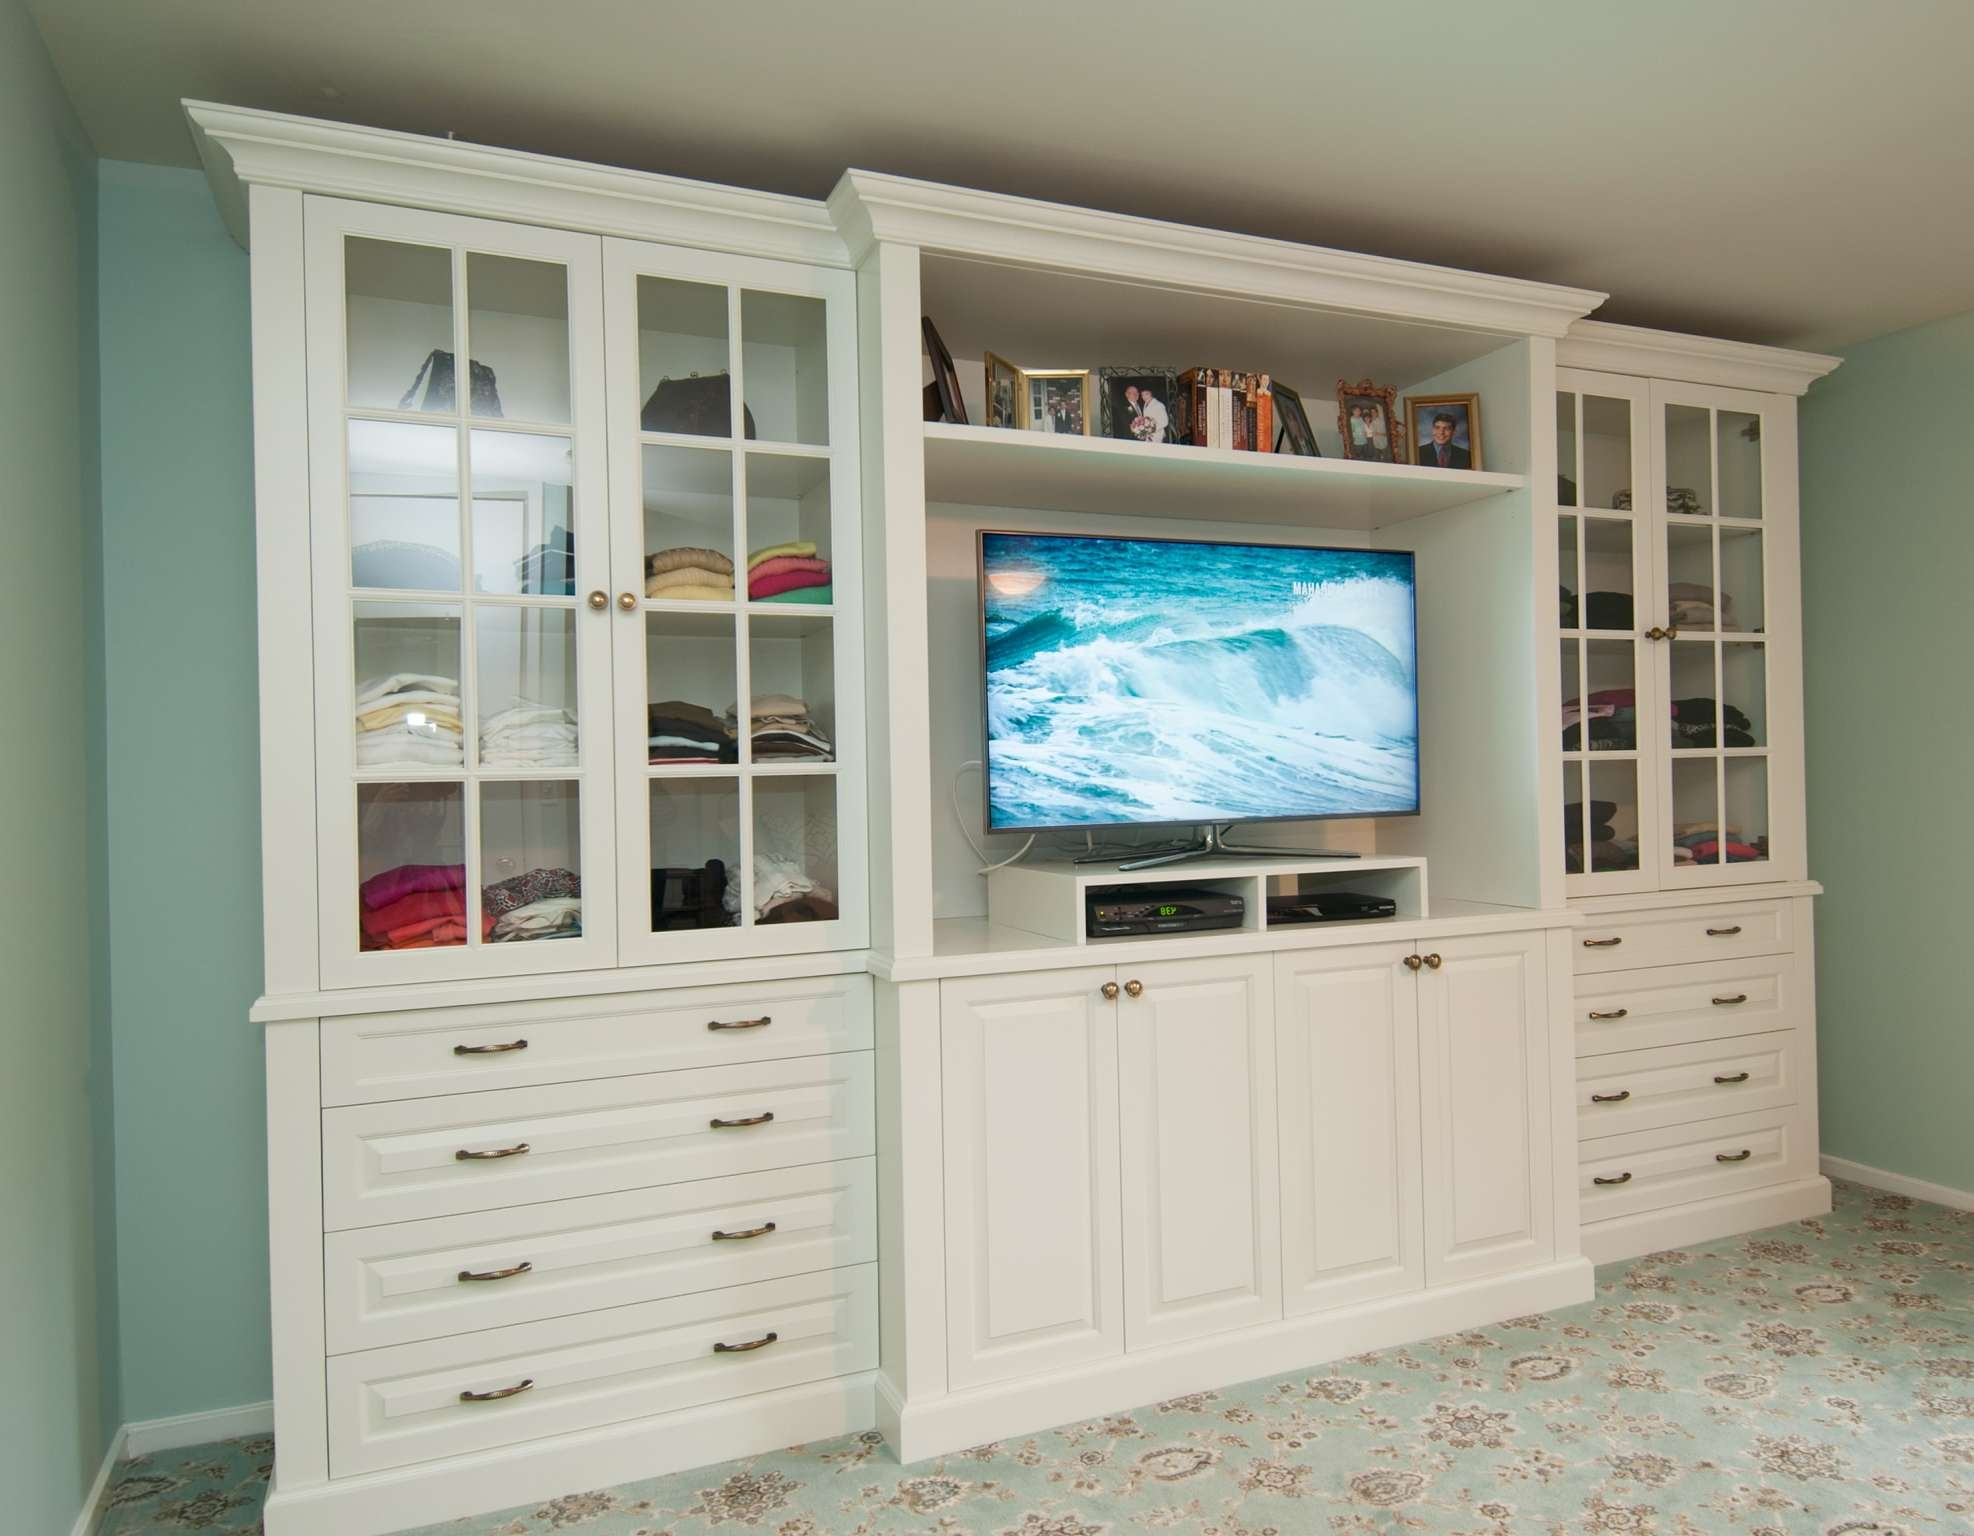 Bedroom Tv Stand Dresser Tv And Display Shelves Combination Throughout Dresser And Tv Stands Combination (View 2 of 15)